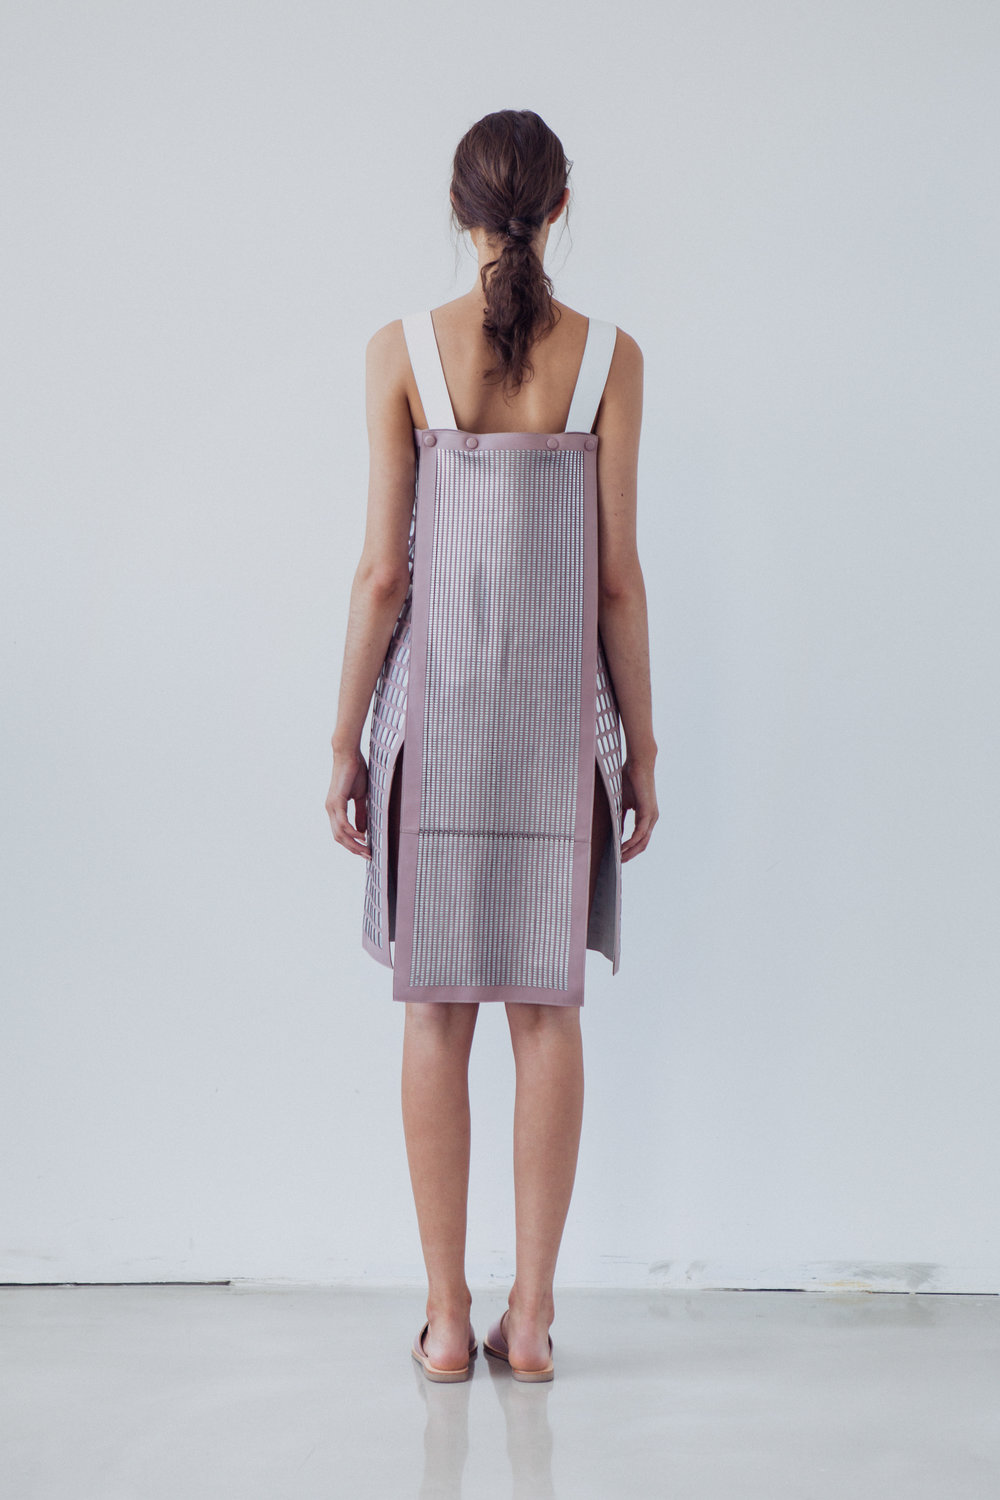 allie_howard_lookbook_05_back.jpg